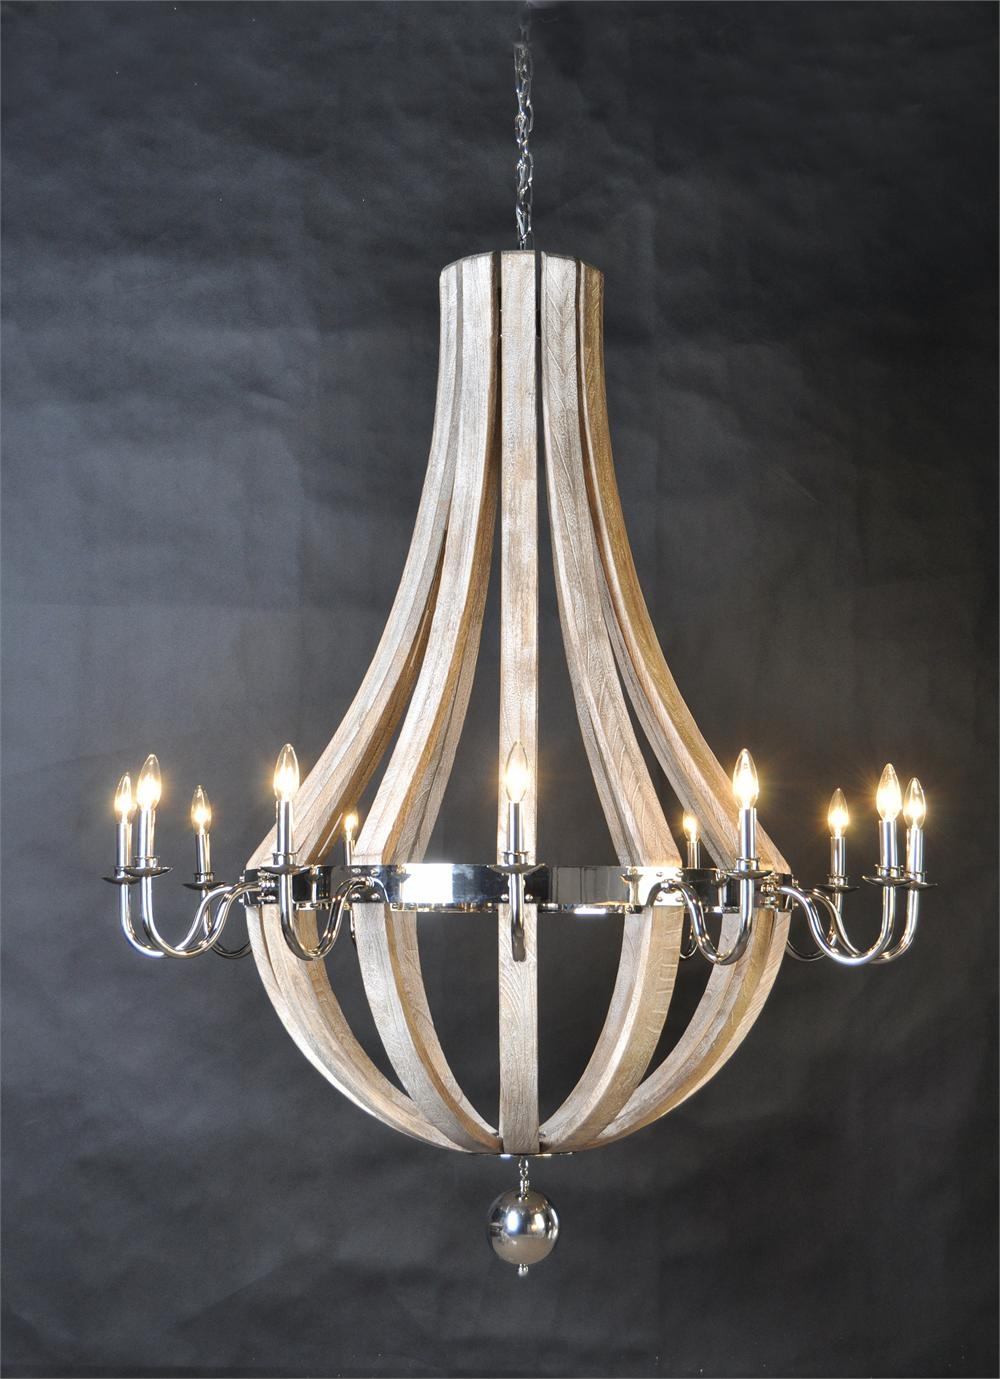 Chandelier Astounding French Country Chandelier French Country Pertaining To French Country Chandeliers (View 7 of 25)